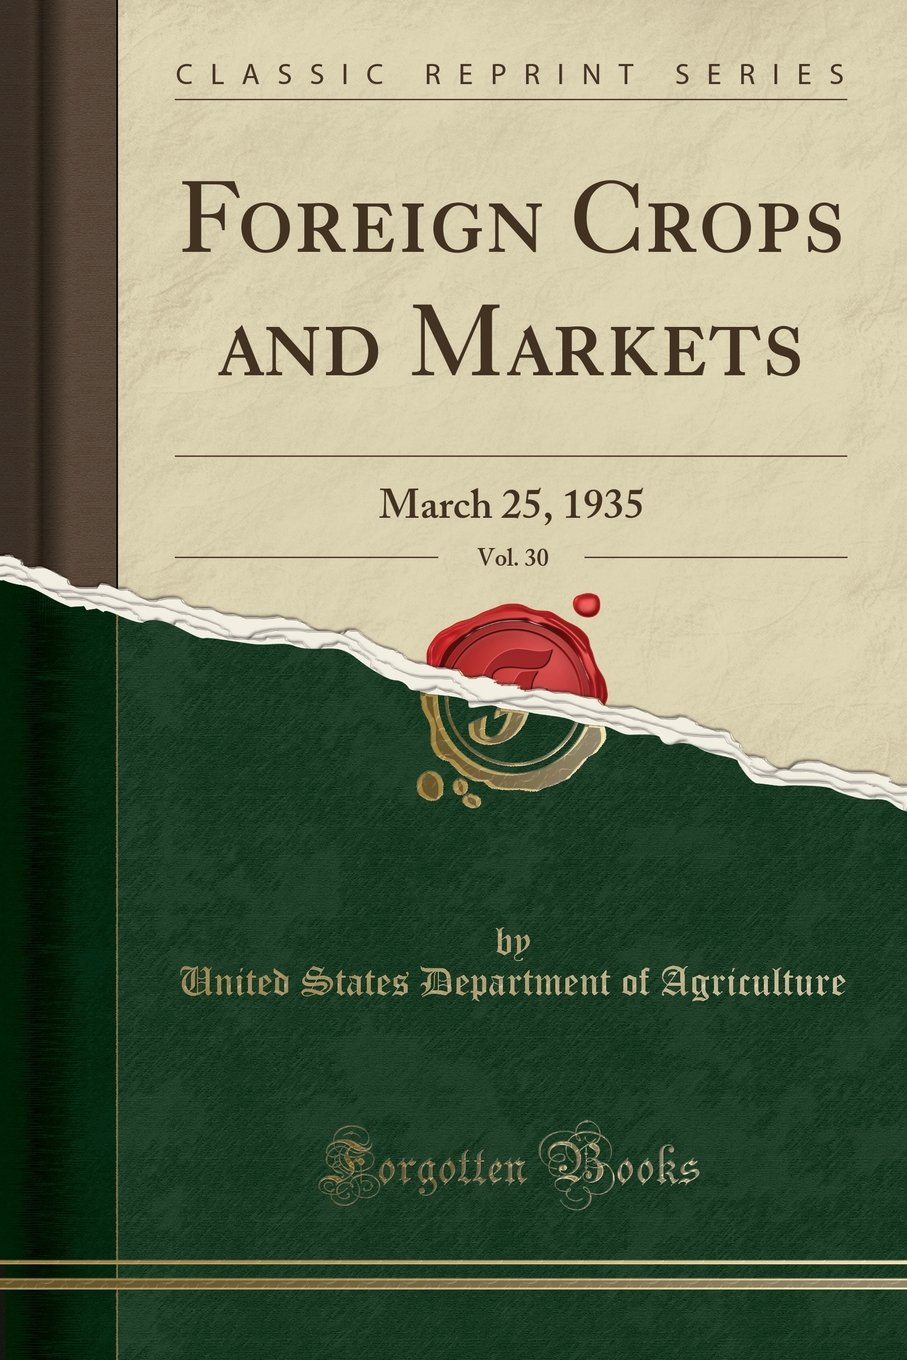 Foreign Crops and Markets, Vol. 30: March 25, 1935 (Classic Reprint) ebook